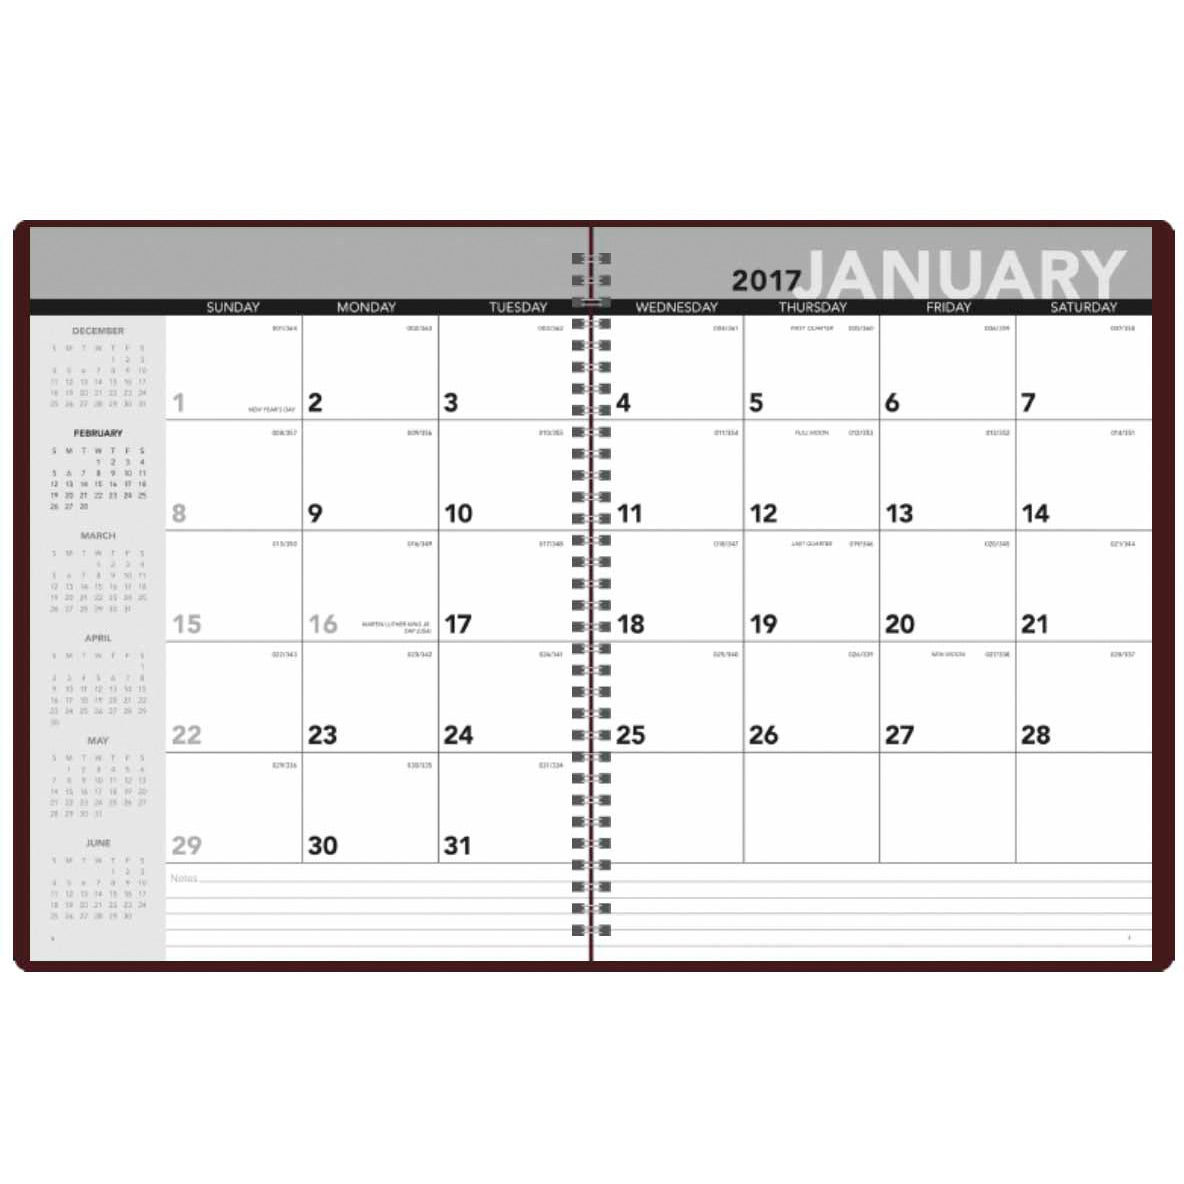 Monthly planner 2017 custom day planners ea for Create custom planner